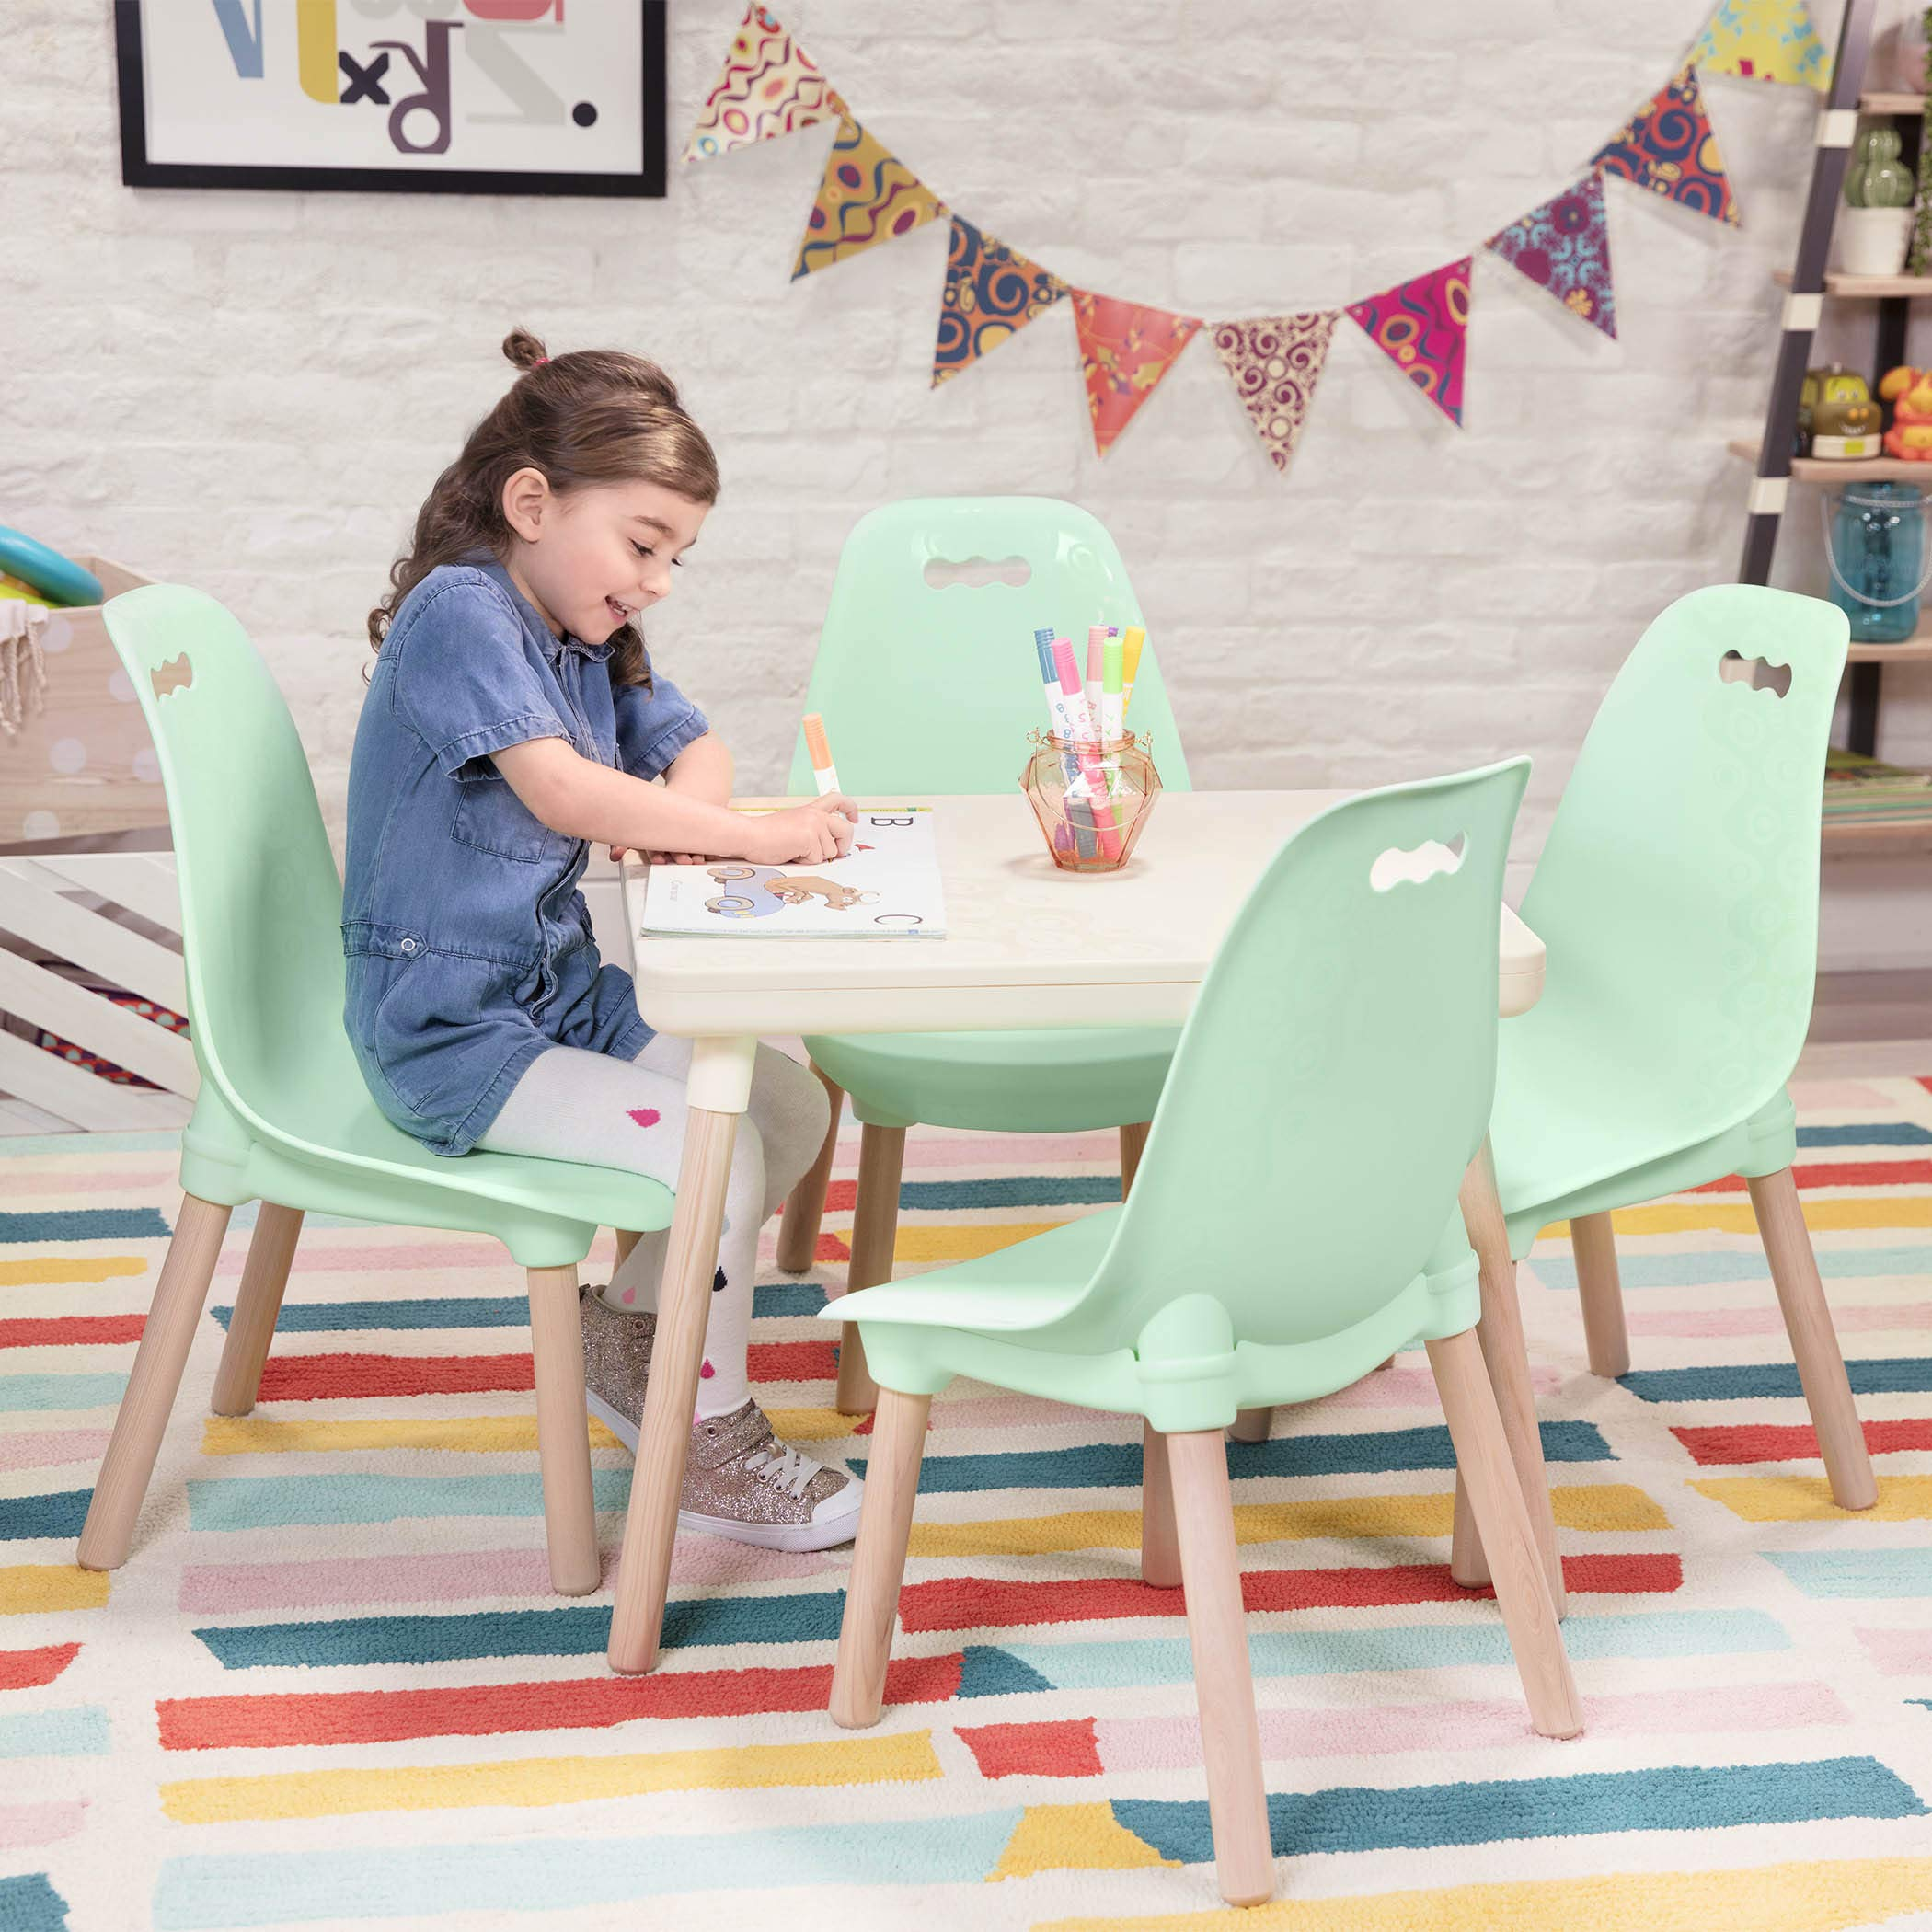 B toys – Kids Furniture Set – 1 Craft Table & 2 Kids Chairs with Natural Wooden Legs (Ivory and Mint) by B. spaces by Battat (Image #6)